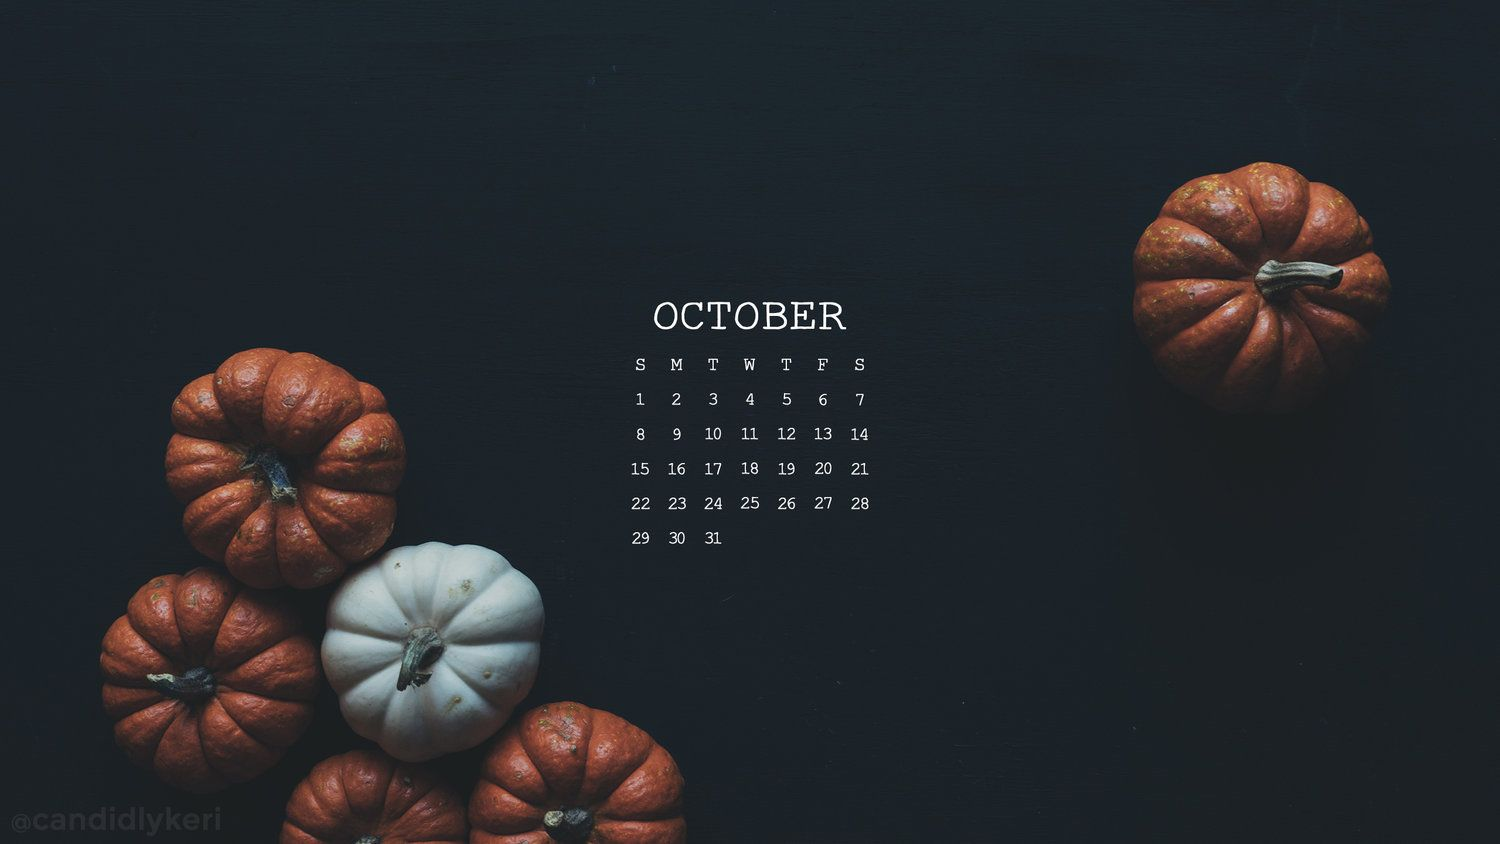 2017 October7 Jpg Desktop Wallpaper Desktop Wallpaper Art October Calendar Wallpaper